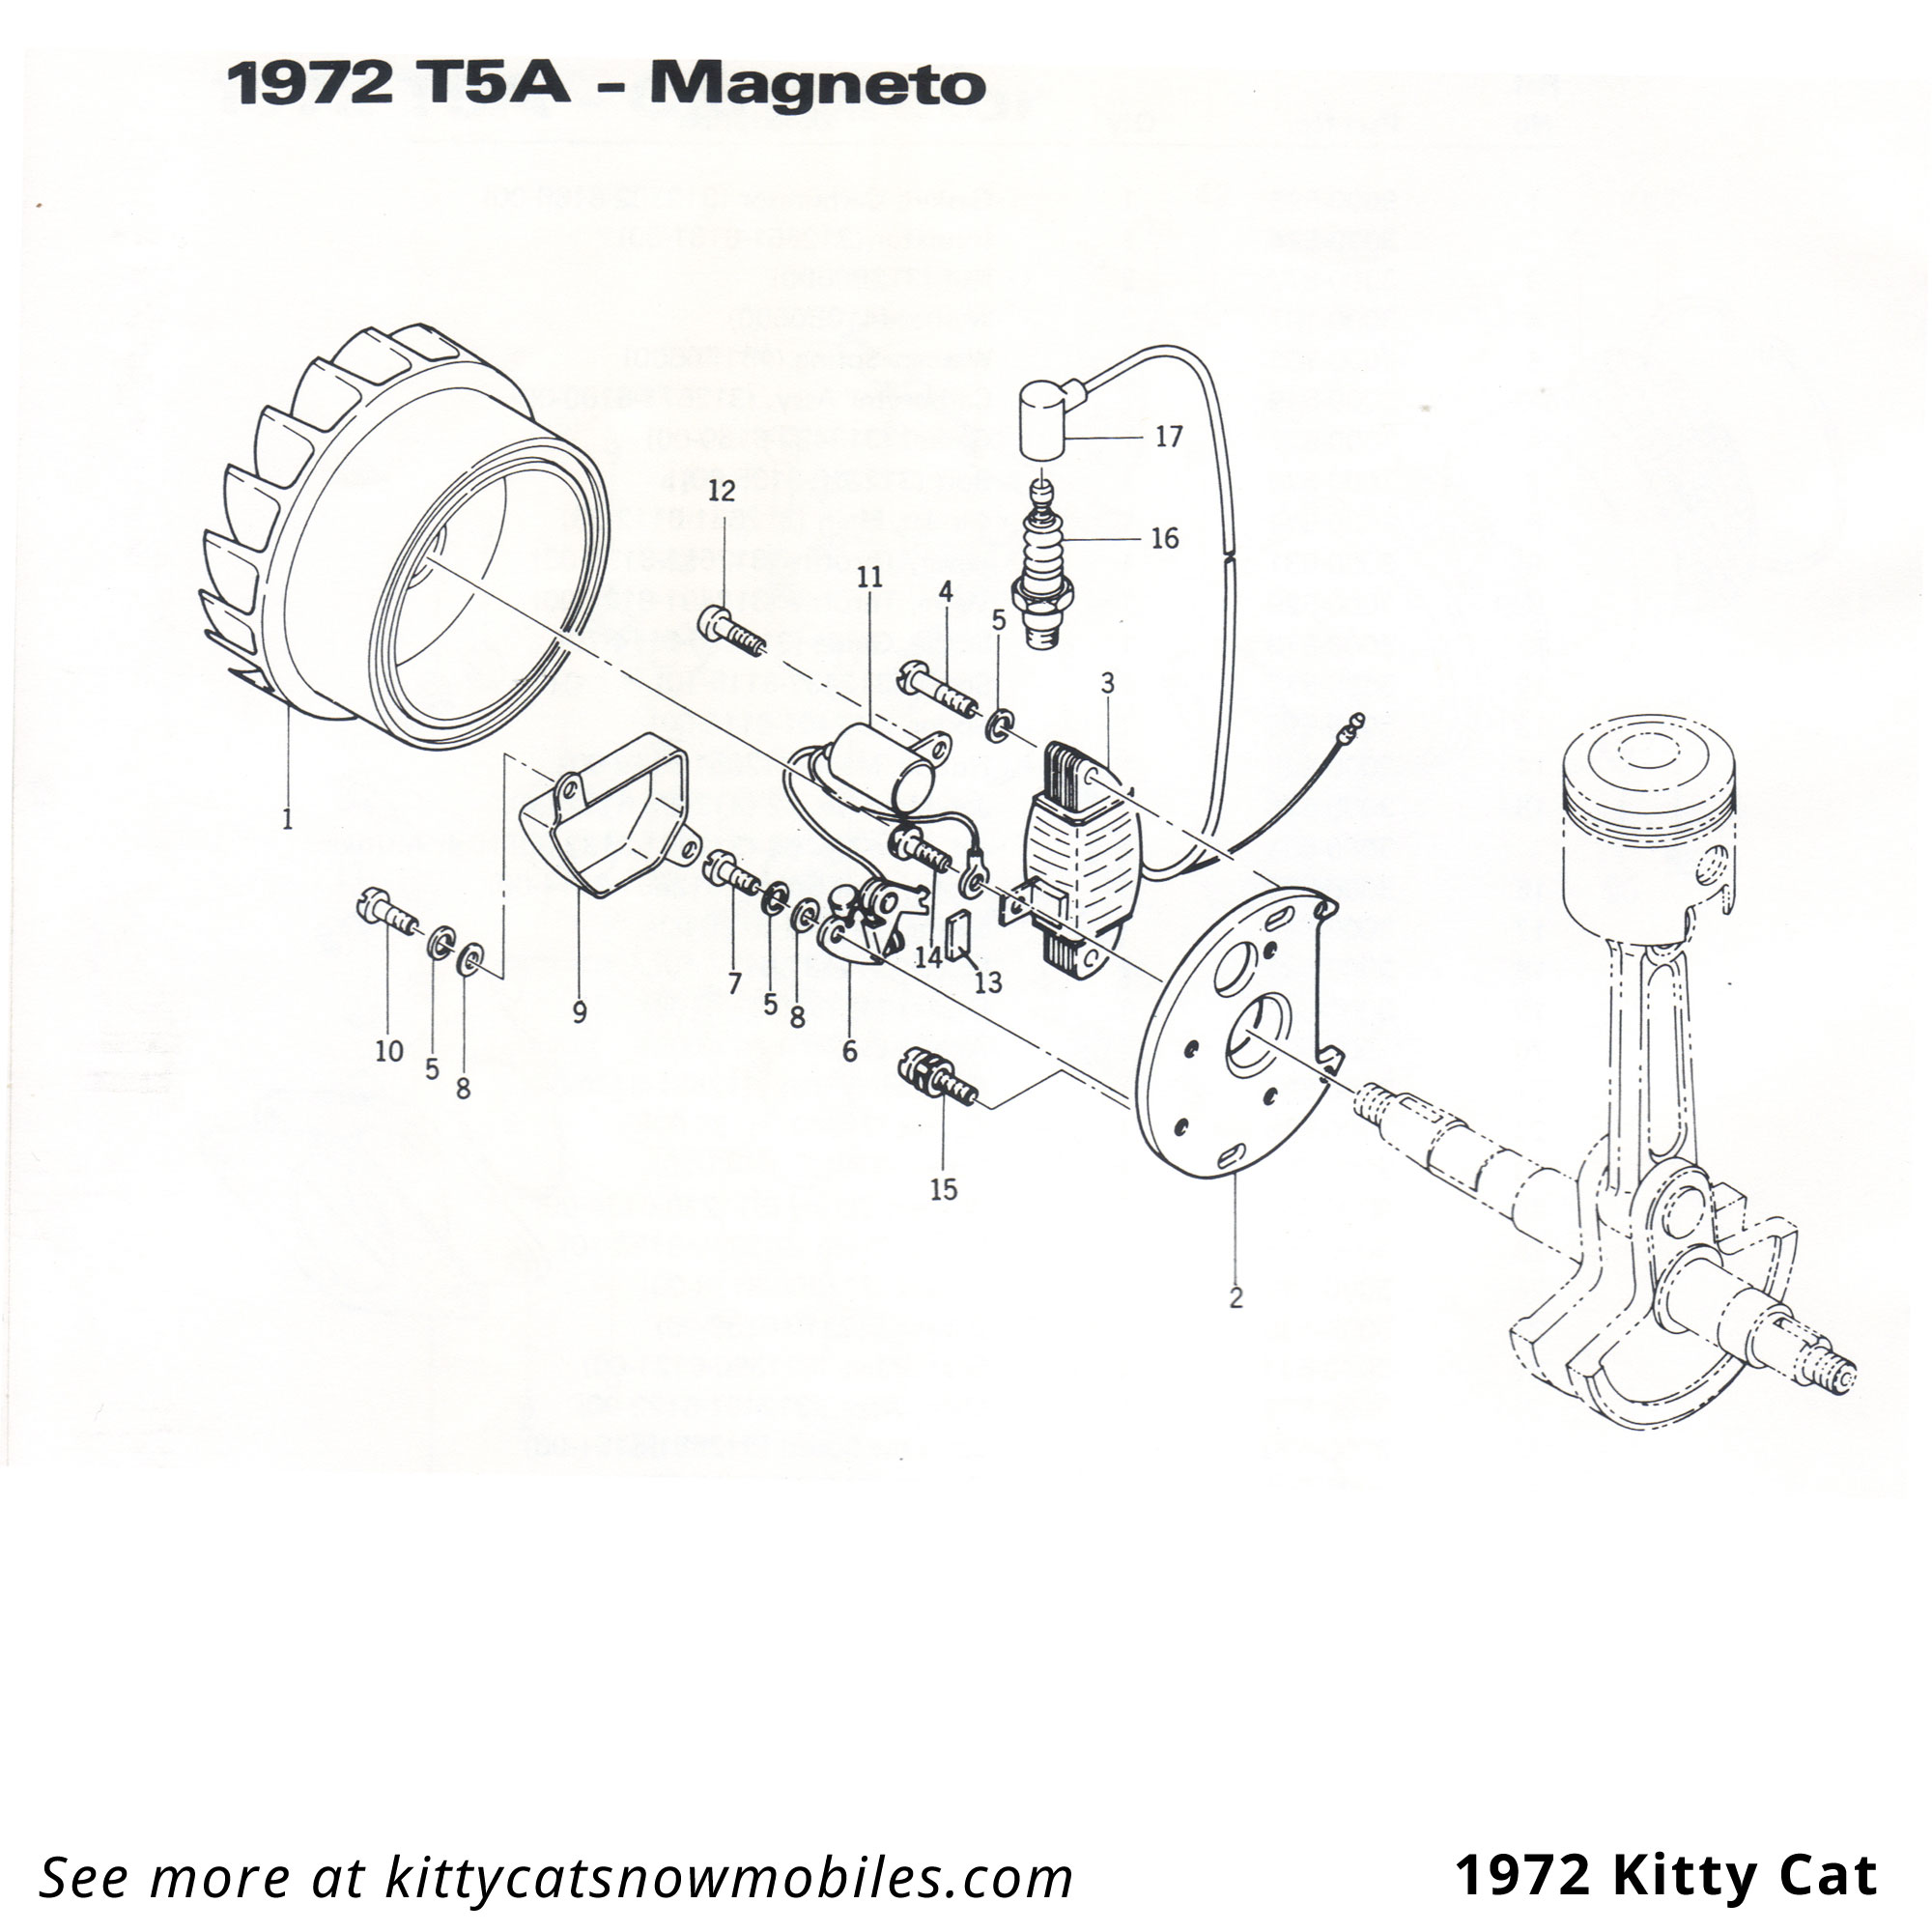 72 Kitty Cat Magneto Parts